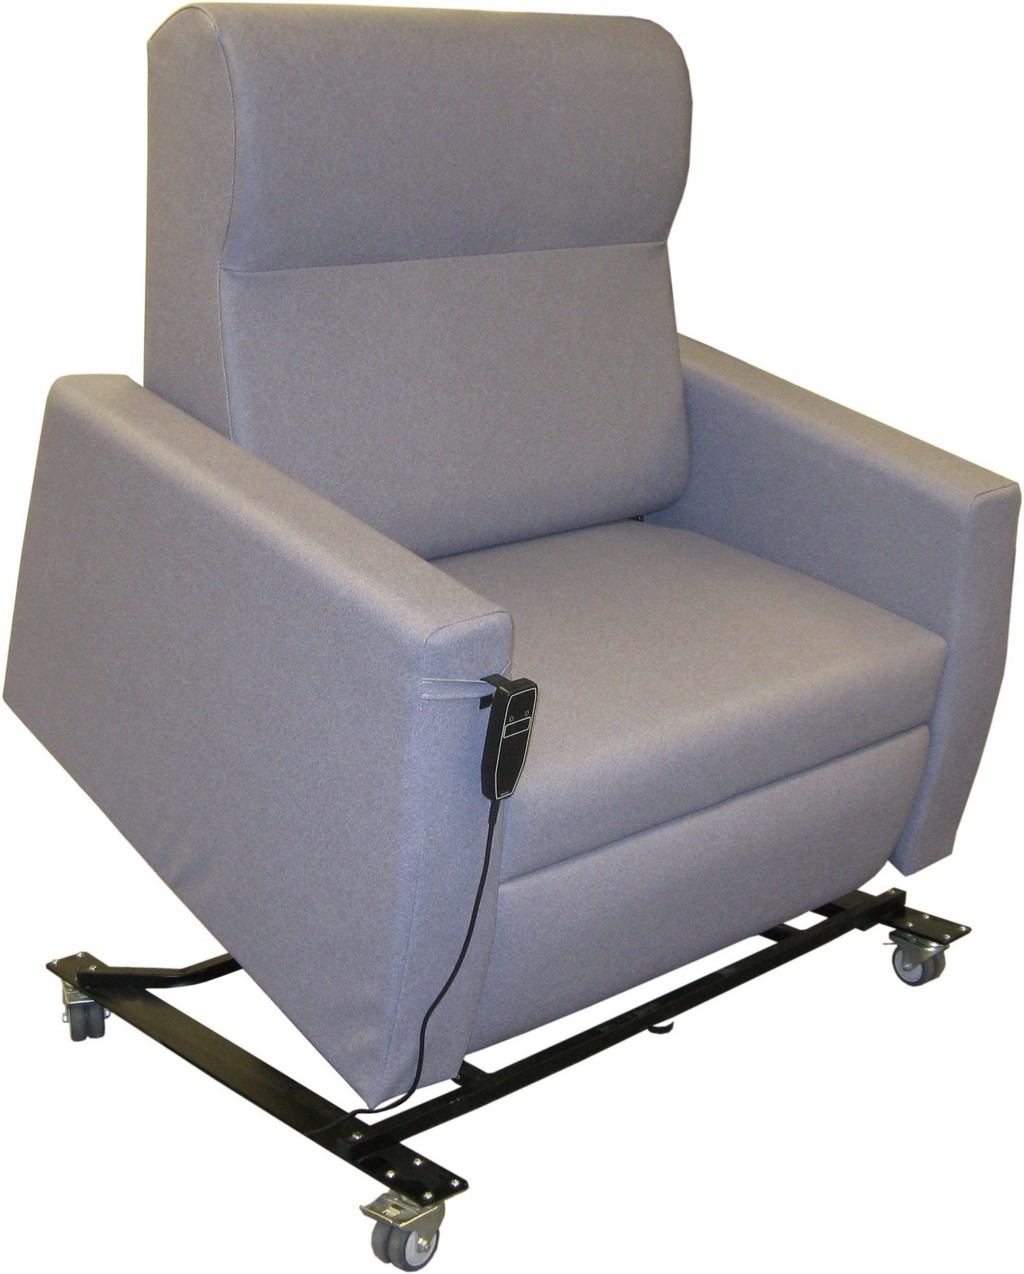 lift chairs medicare code, lift chairs sonoma county, pride lift chair 6132, lift chairs recliners federal way